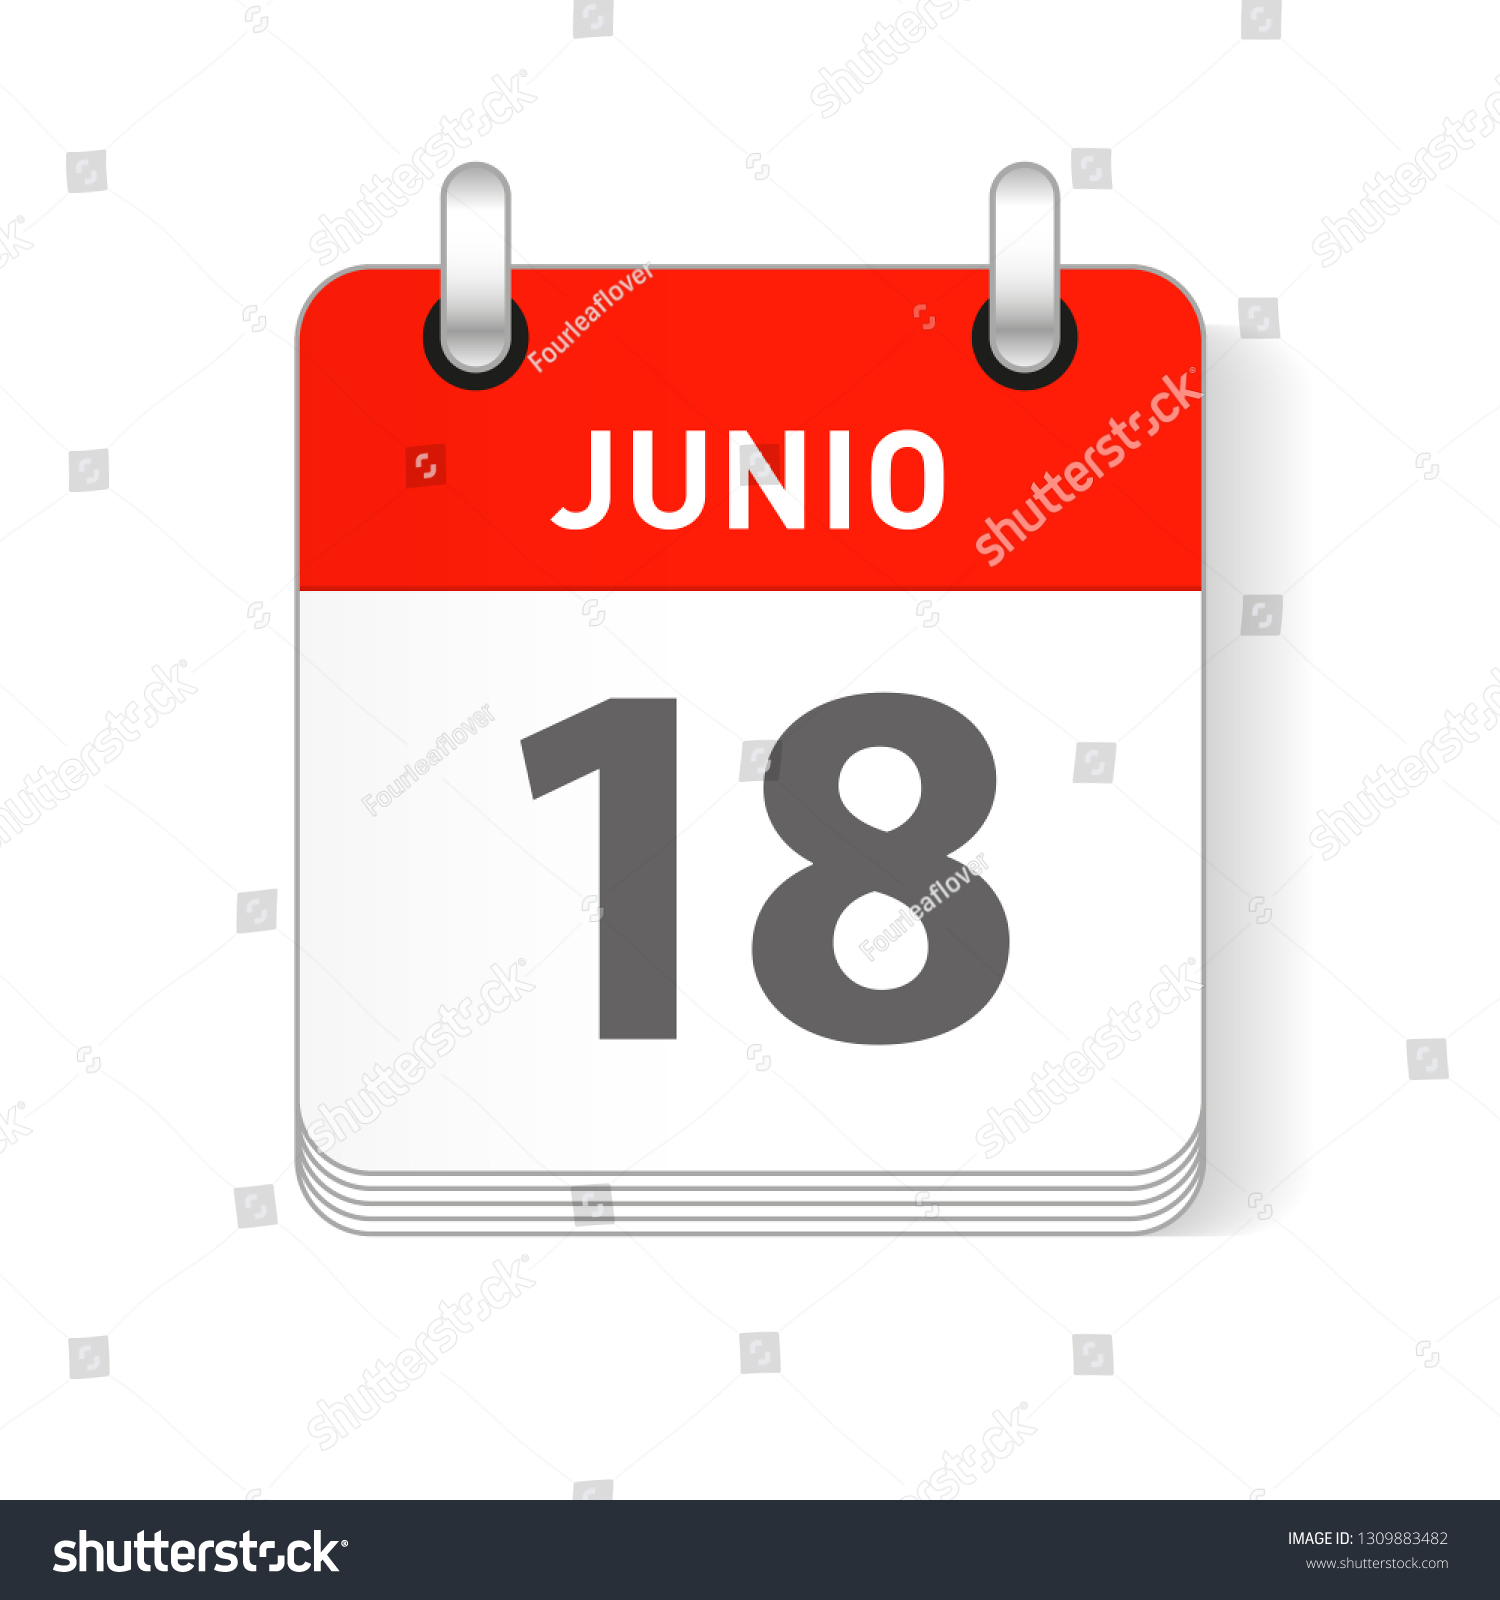 Junio 18, June 18 date visible on a page a day organizer calendar in  spanish Language